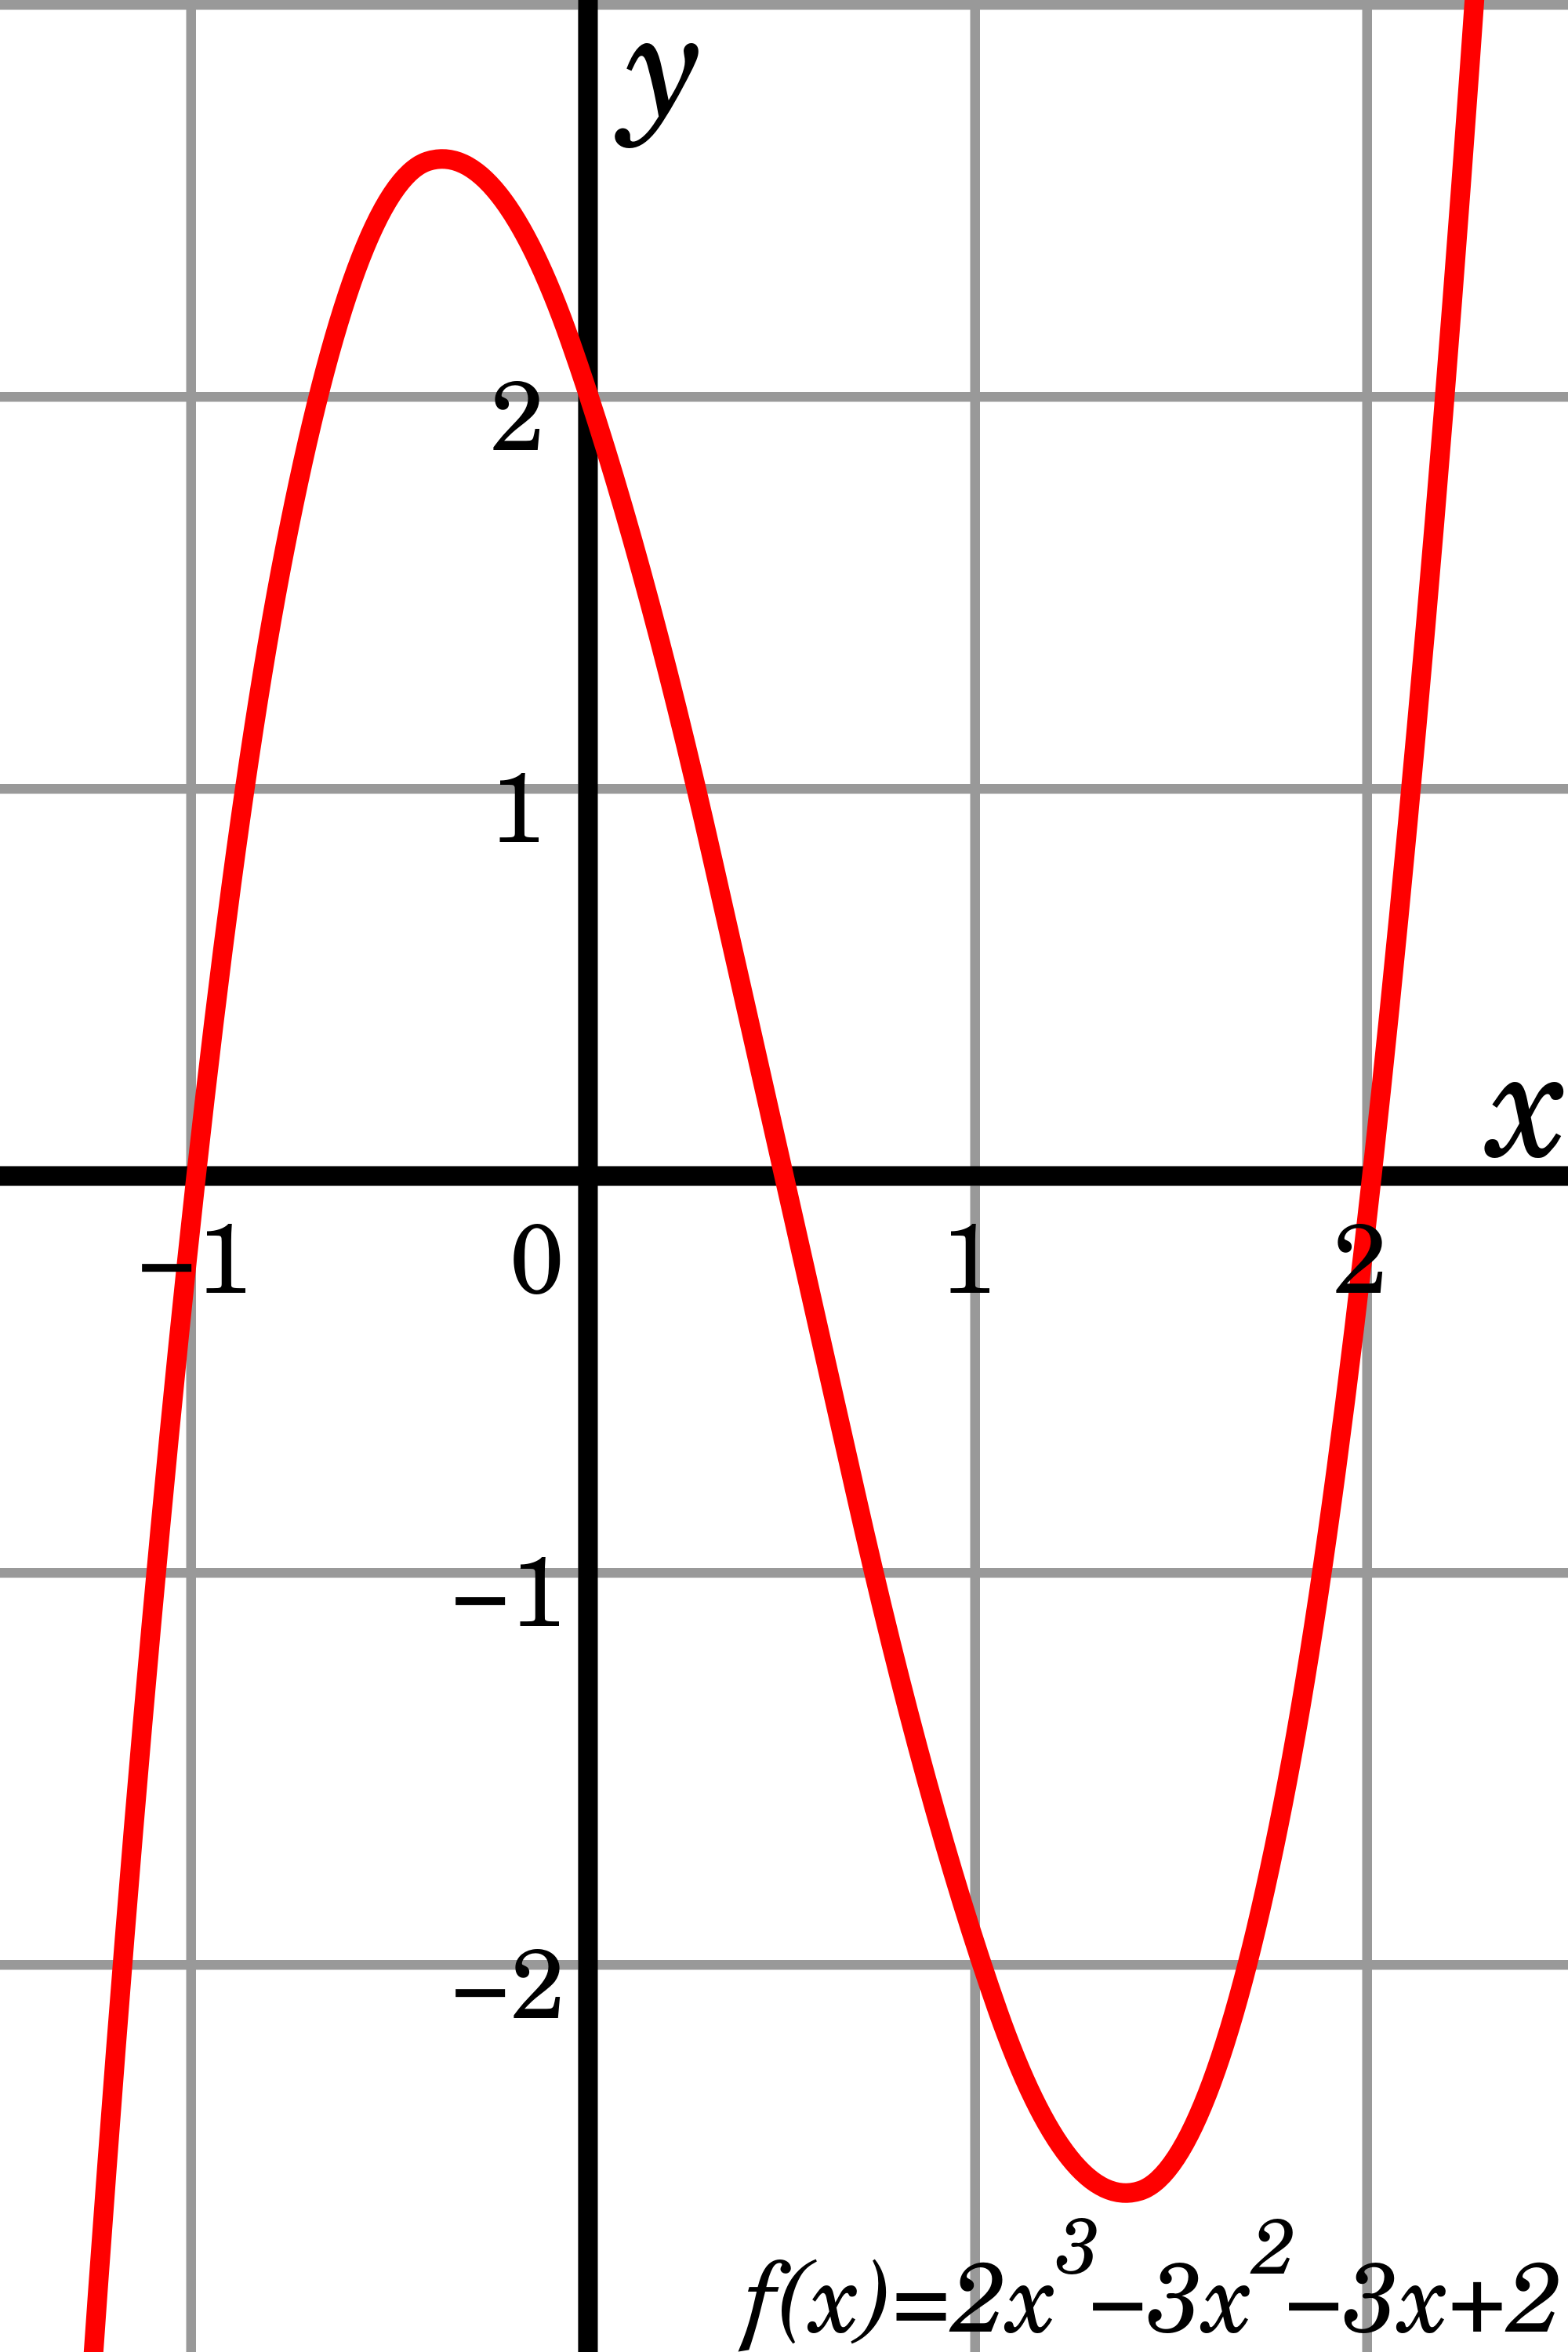 Svg graph creative. File of cubic polynomial